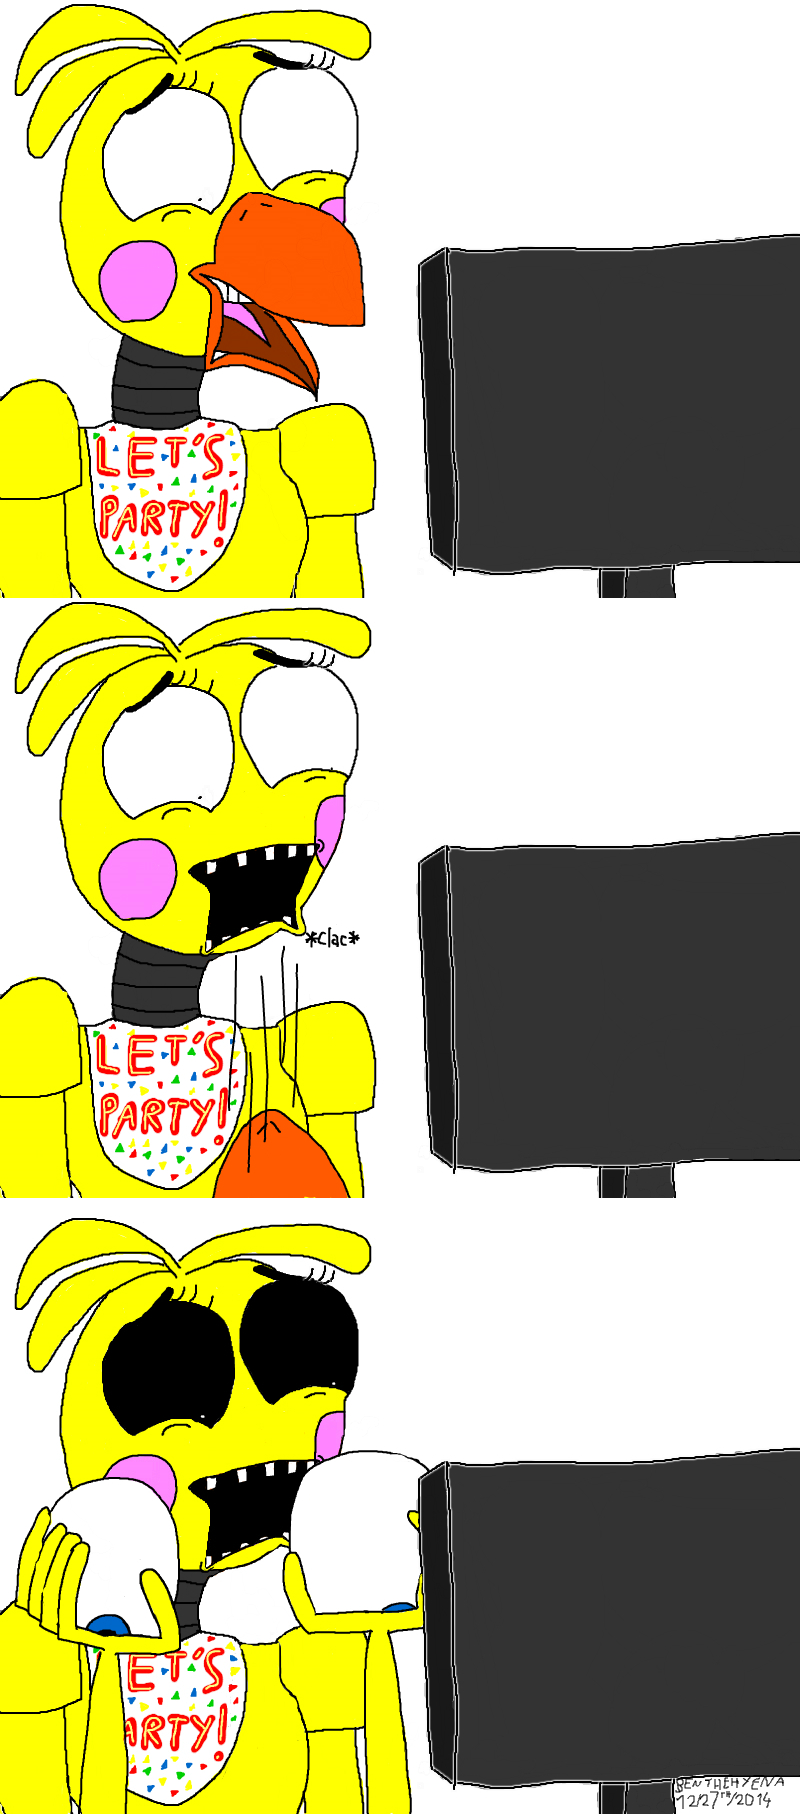 Five nights at freddy rule 34